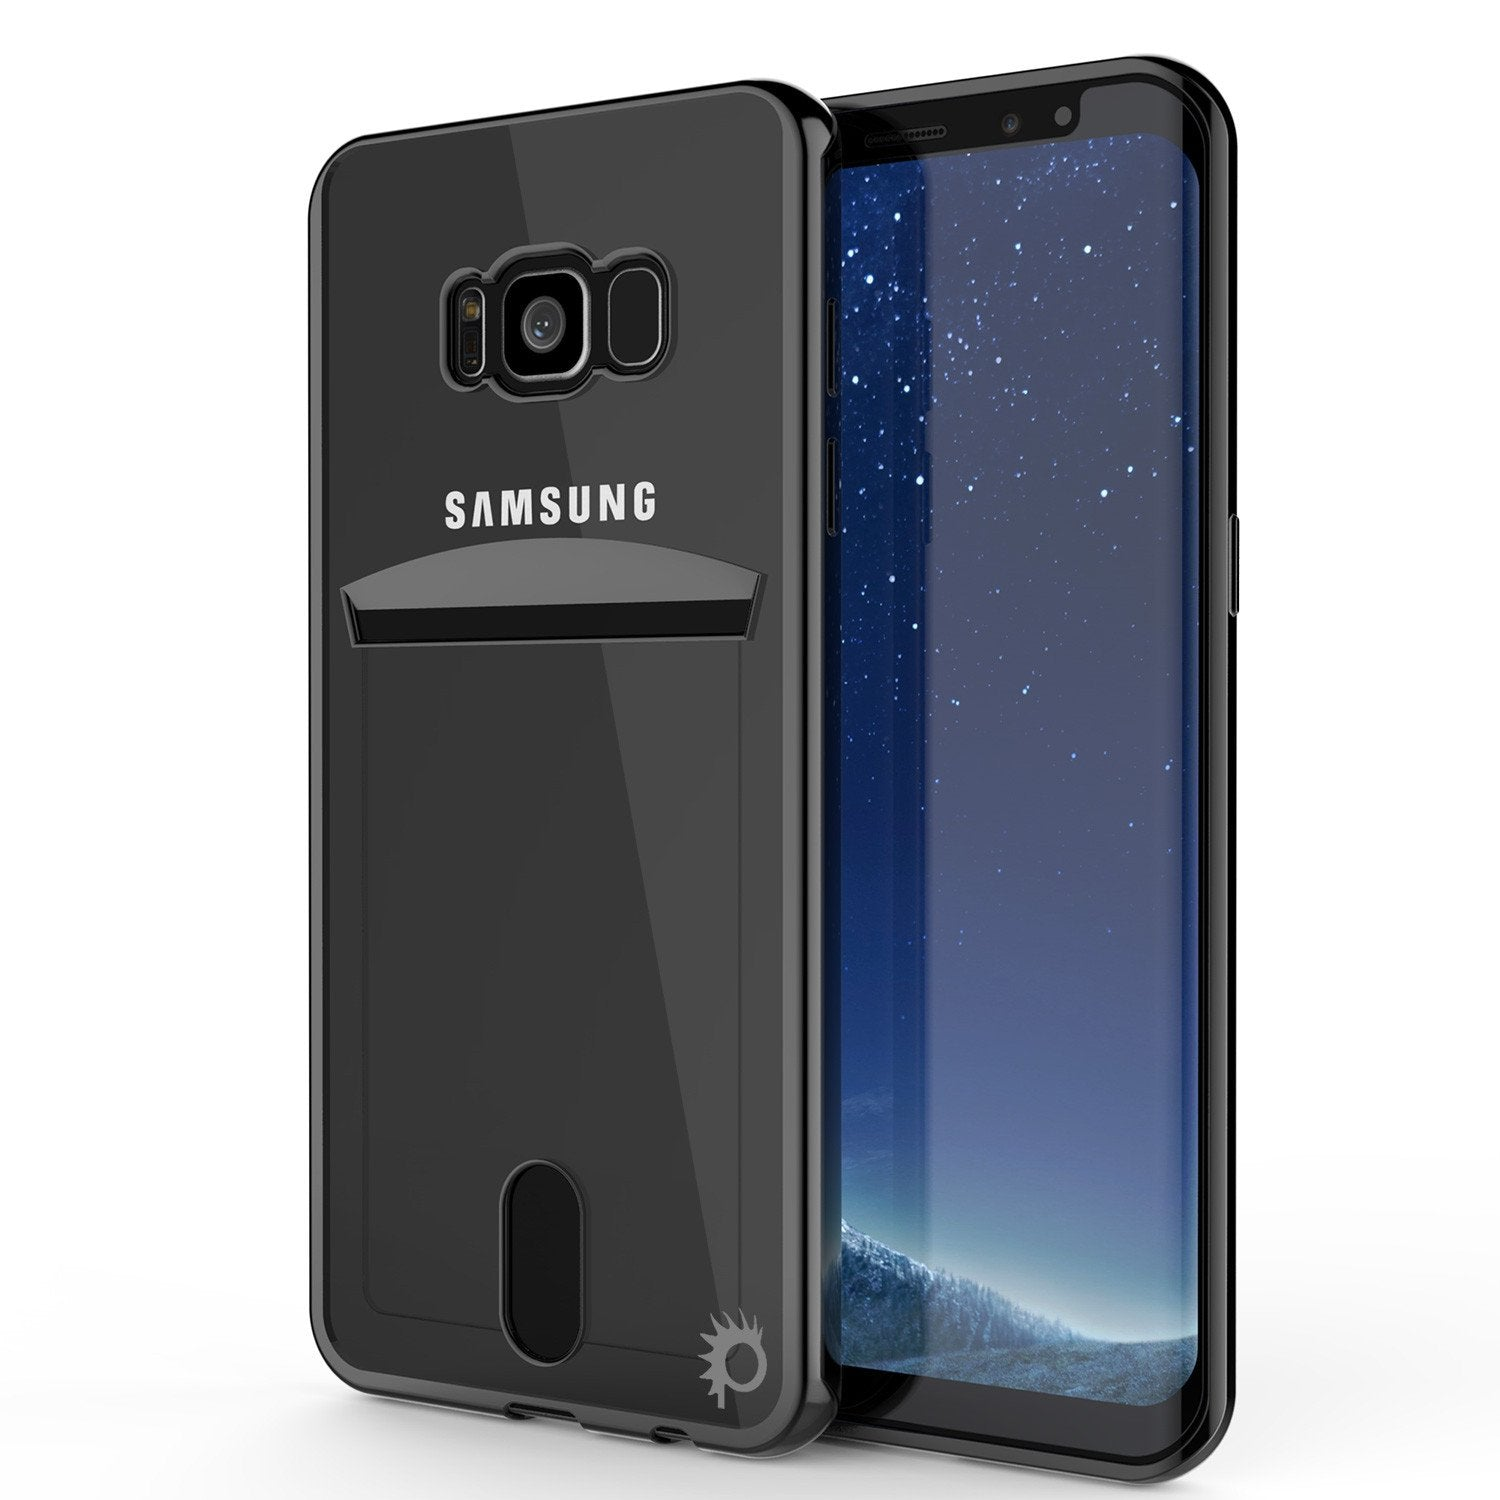 Galaxy S9 Plus Case, PUNKCASE® LUCID Black Series | Card Slot | SHIELD Screen Protector | Ultra fit